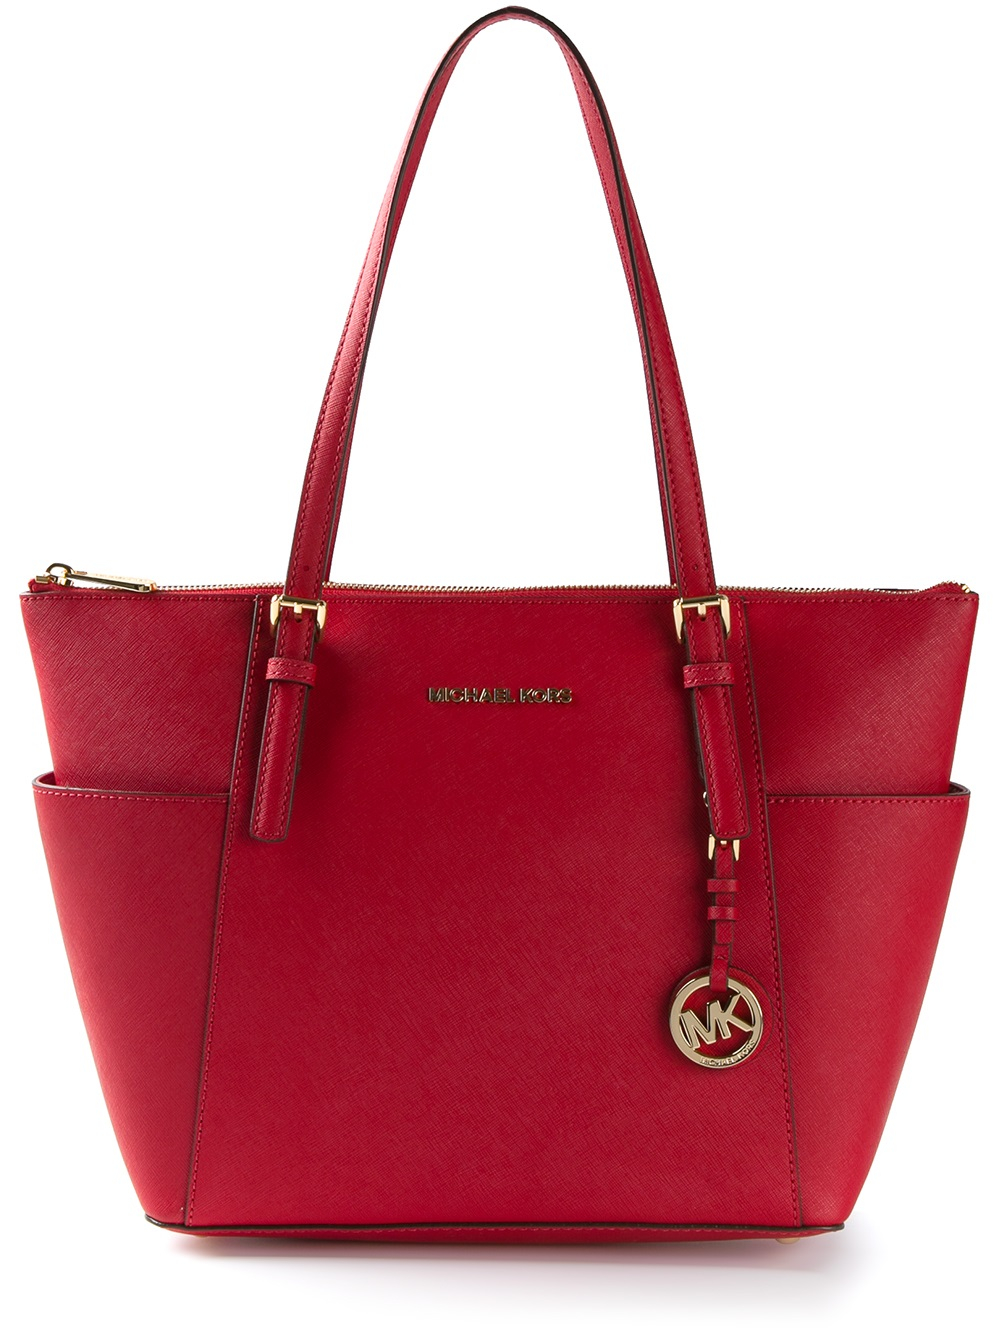 c8c3b52afe28 Michael Kors Saffiano Tote Red | Stanford Center for Opportunity ...